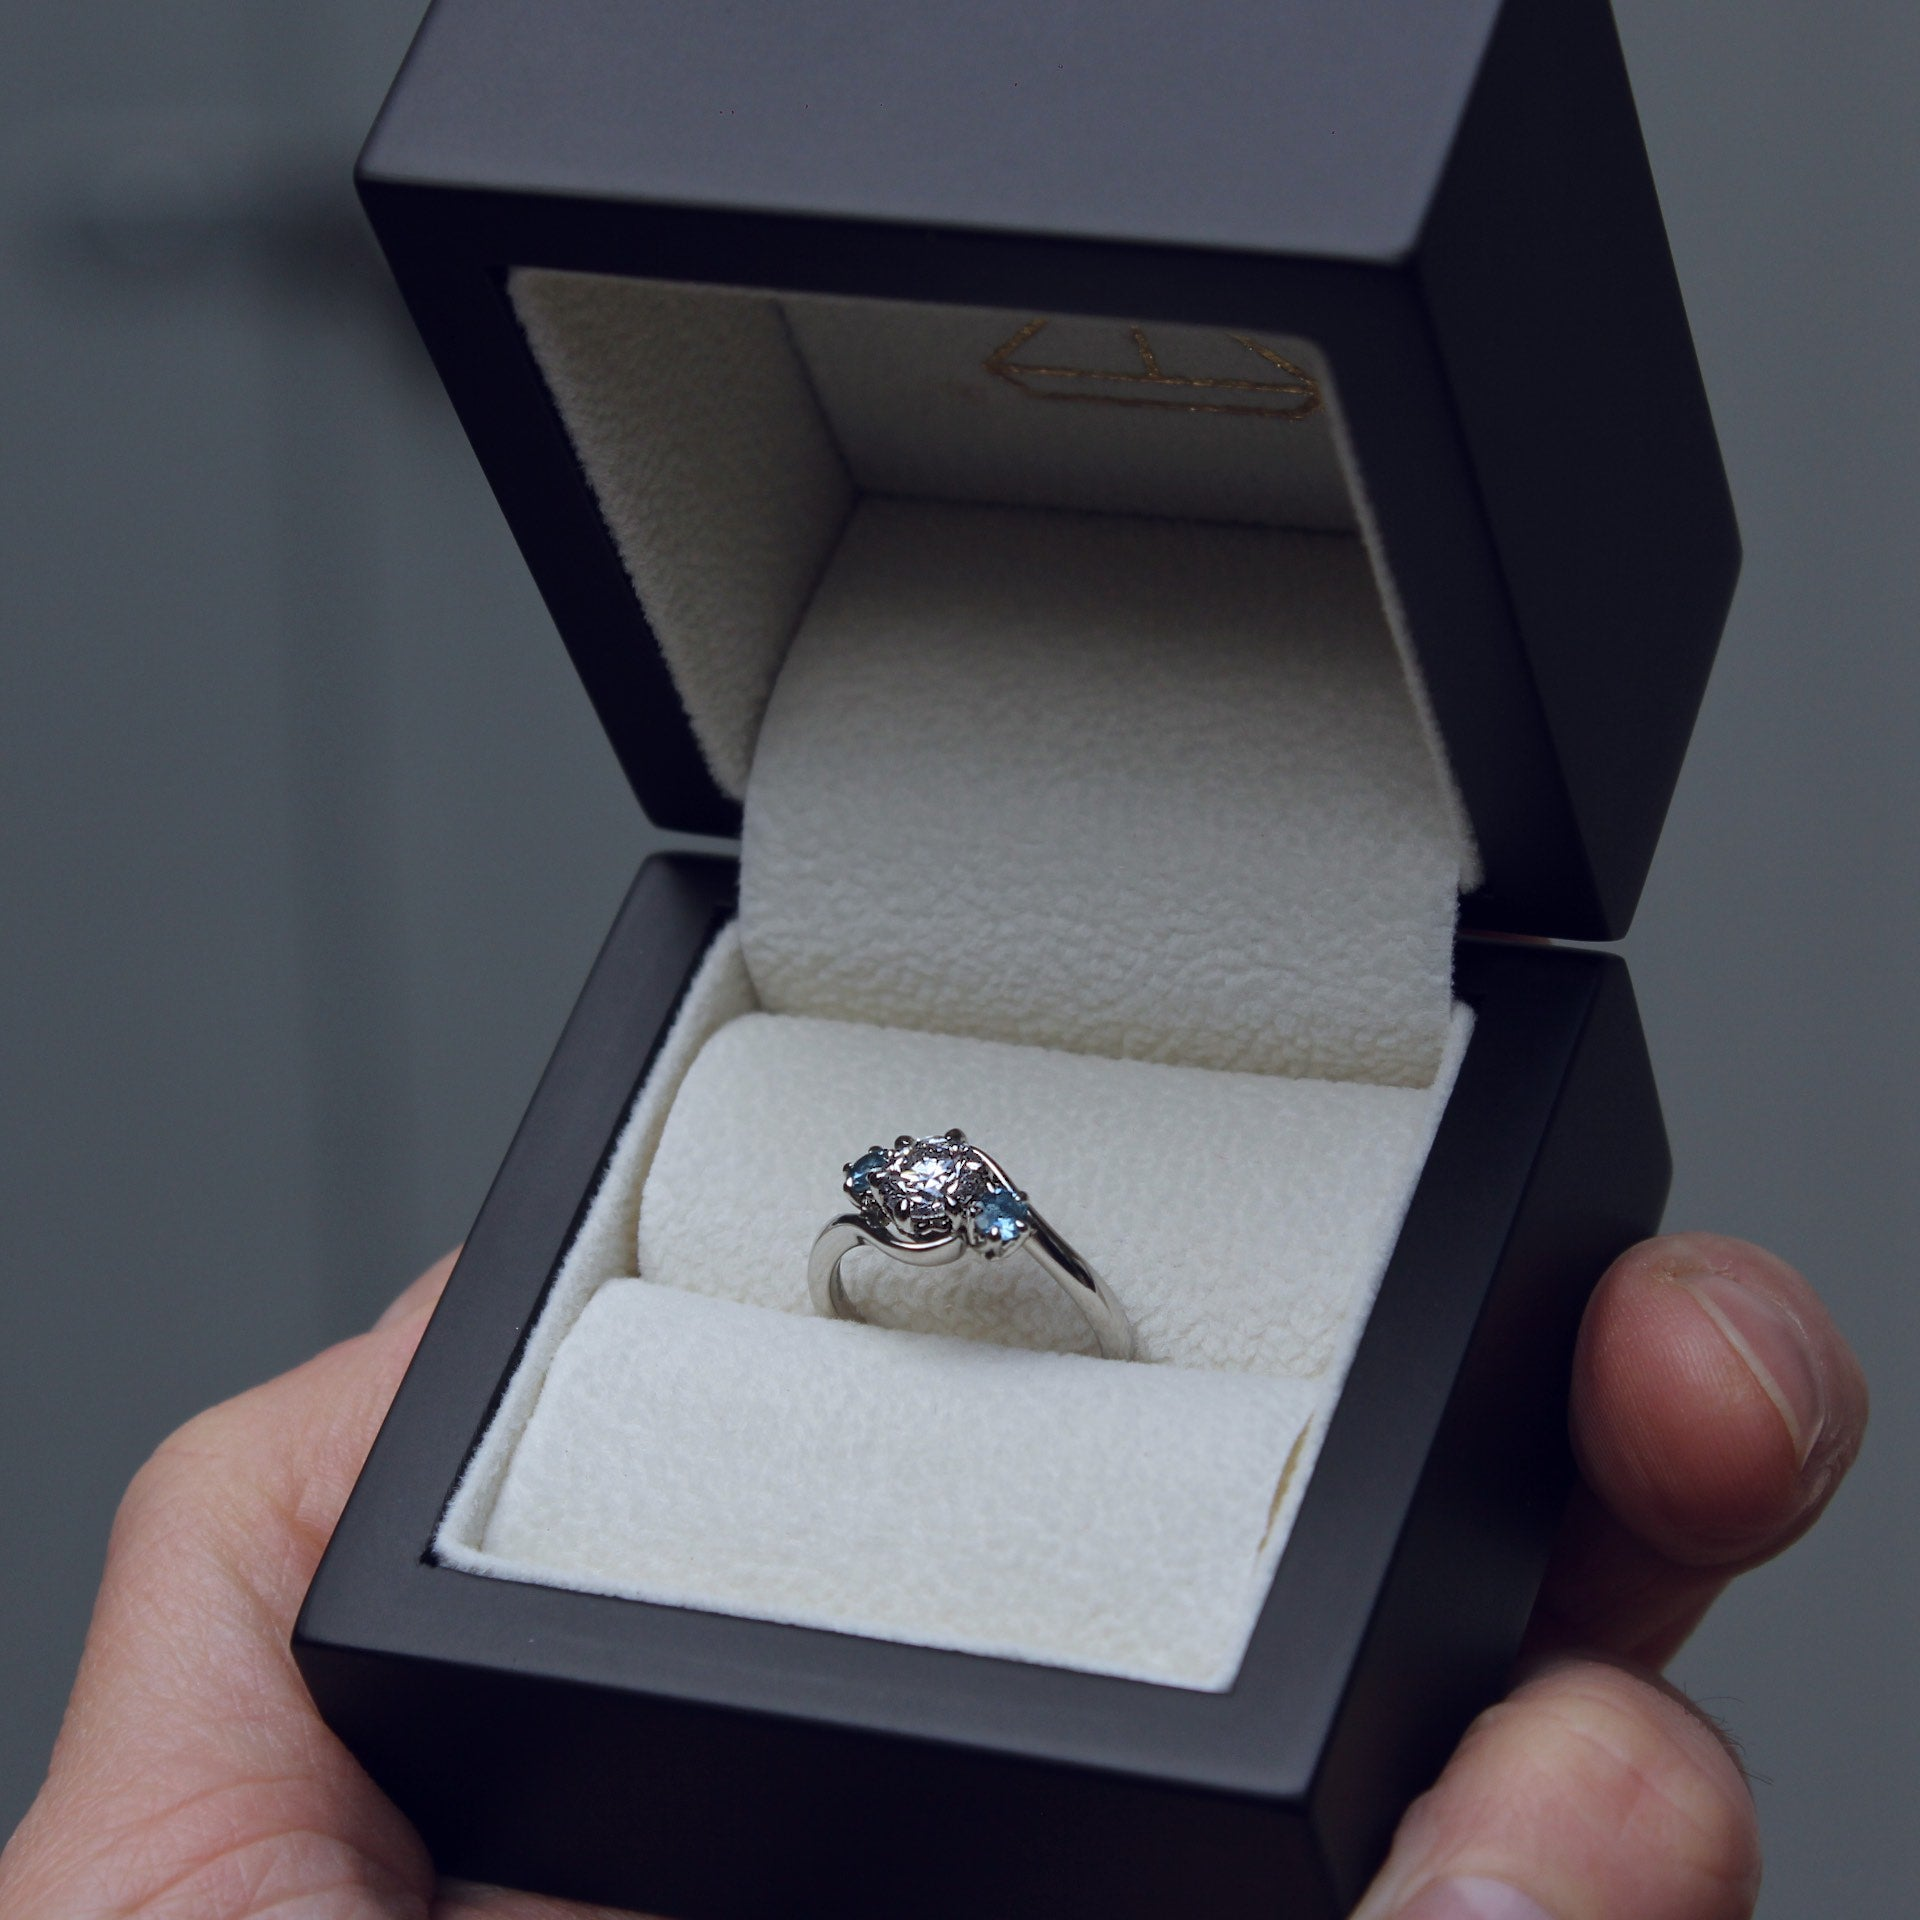 Moira Patience Fine Jewellery Bespoke Commission Twisted Aquamarine and Diamond Engagement Ring in Edinburgh Scotland